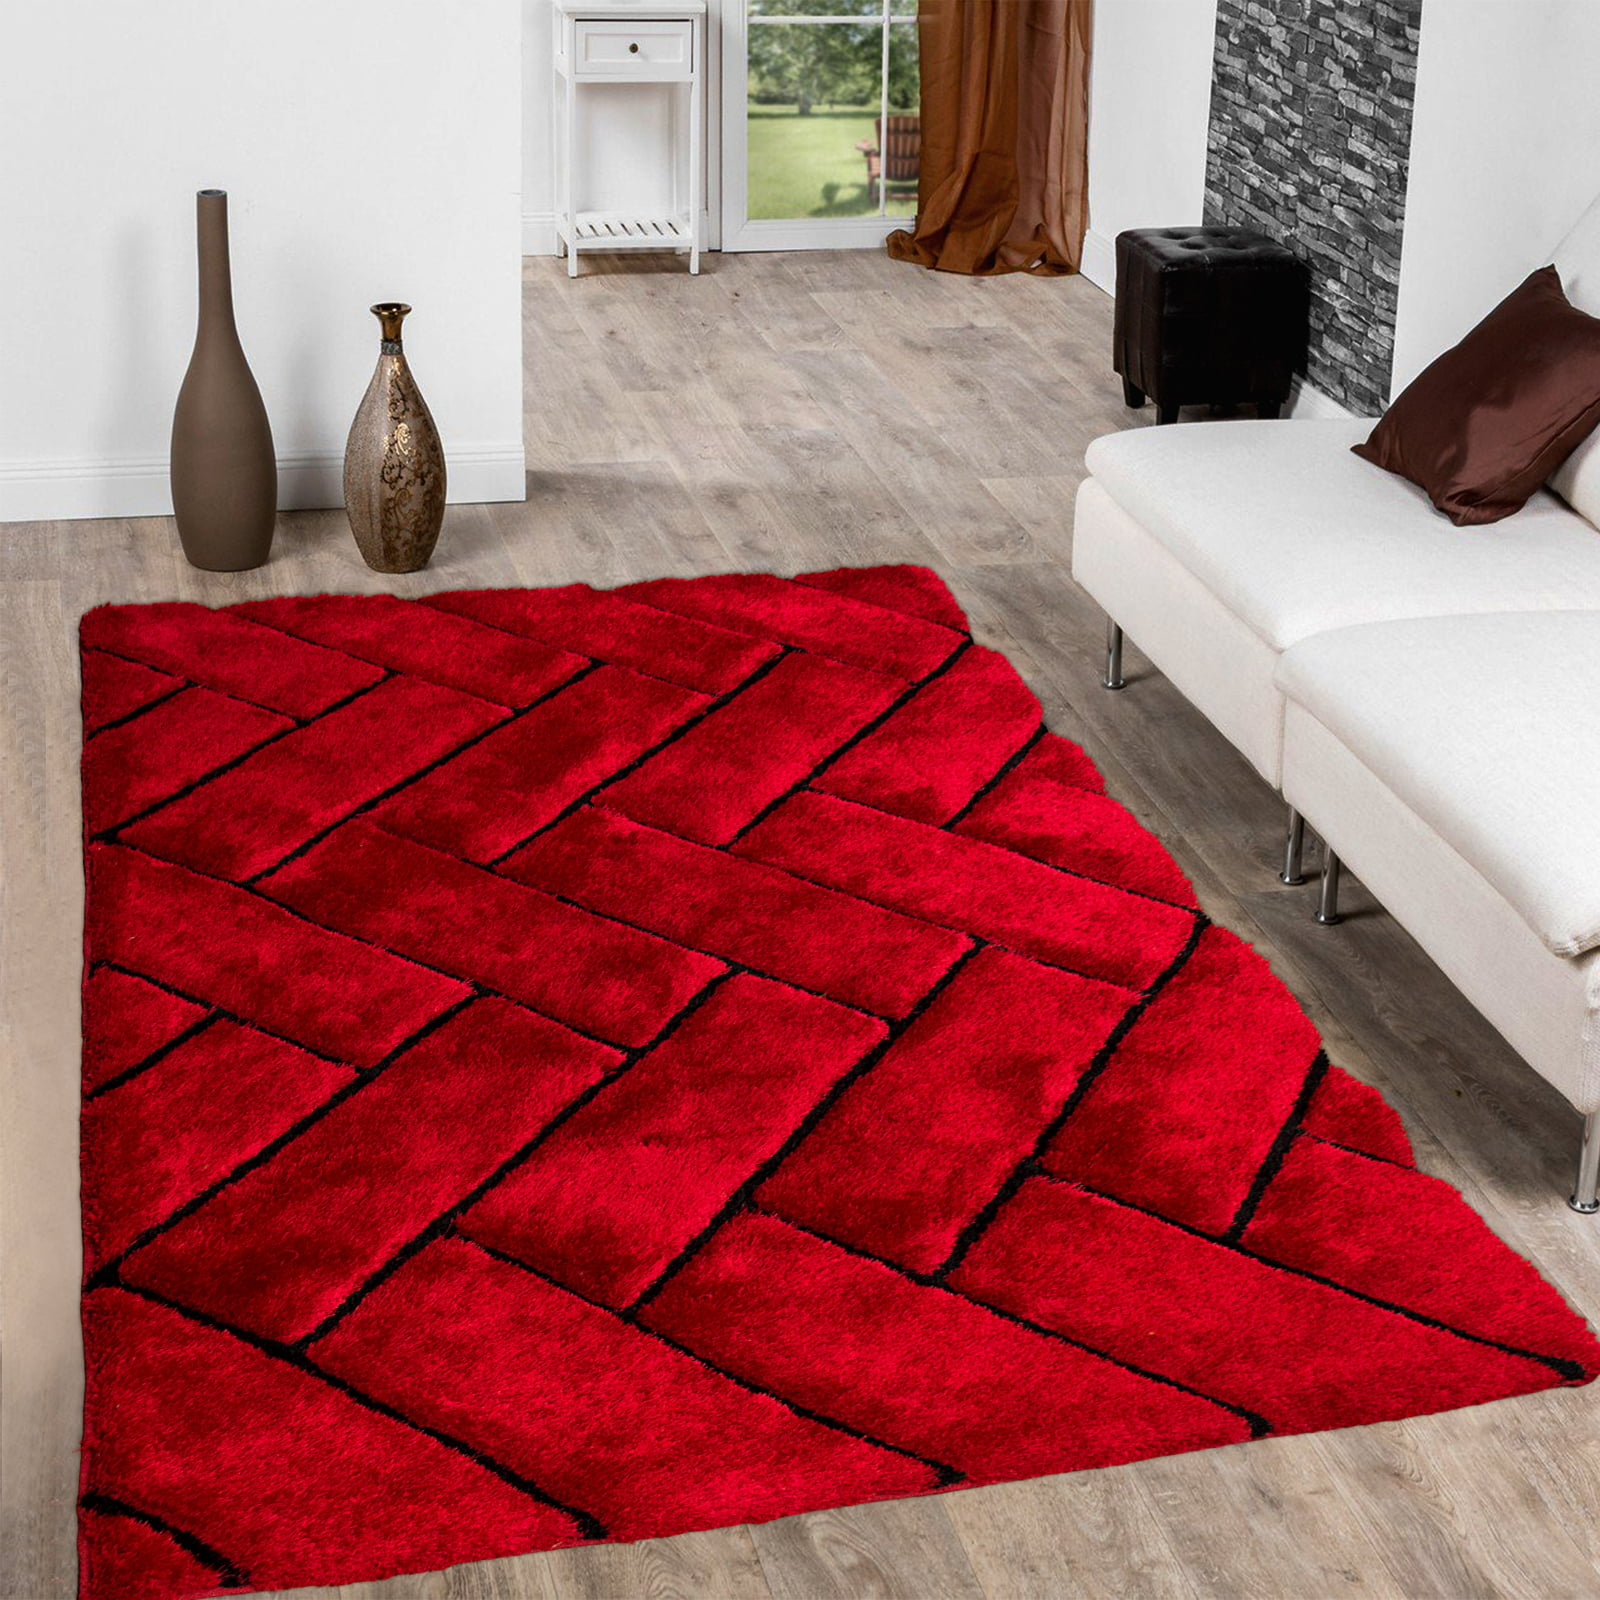 Click here to buy Allstar Red Shaggy Area Rug with 3D Design with Black Lines. Contemporary Formal Casual... by Overstock.